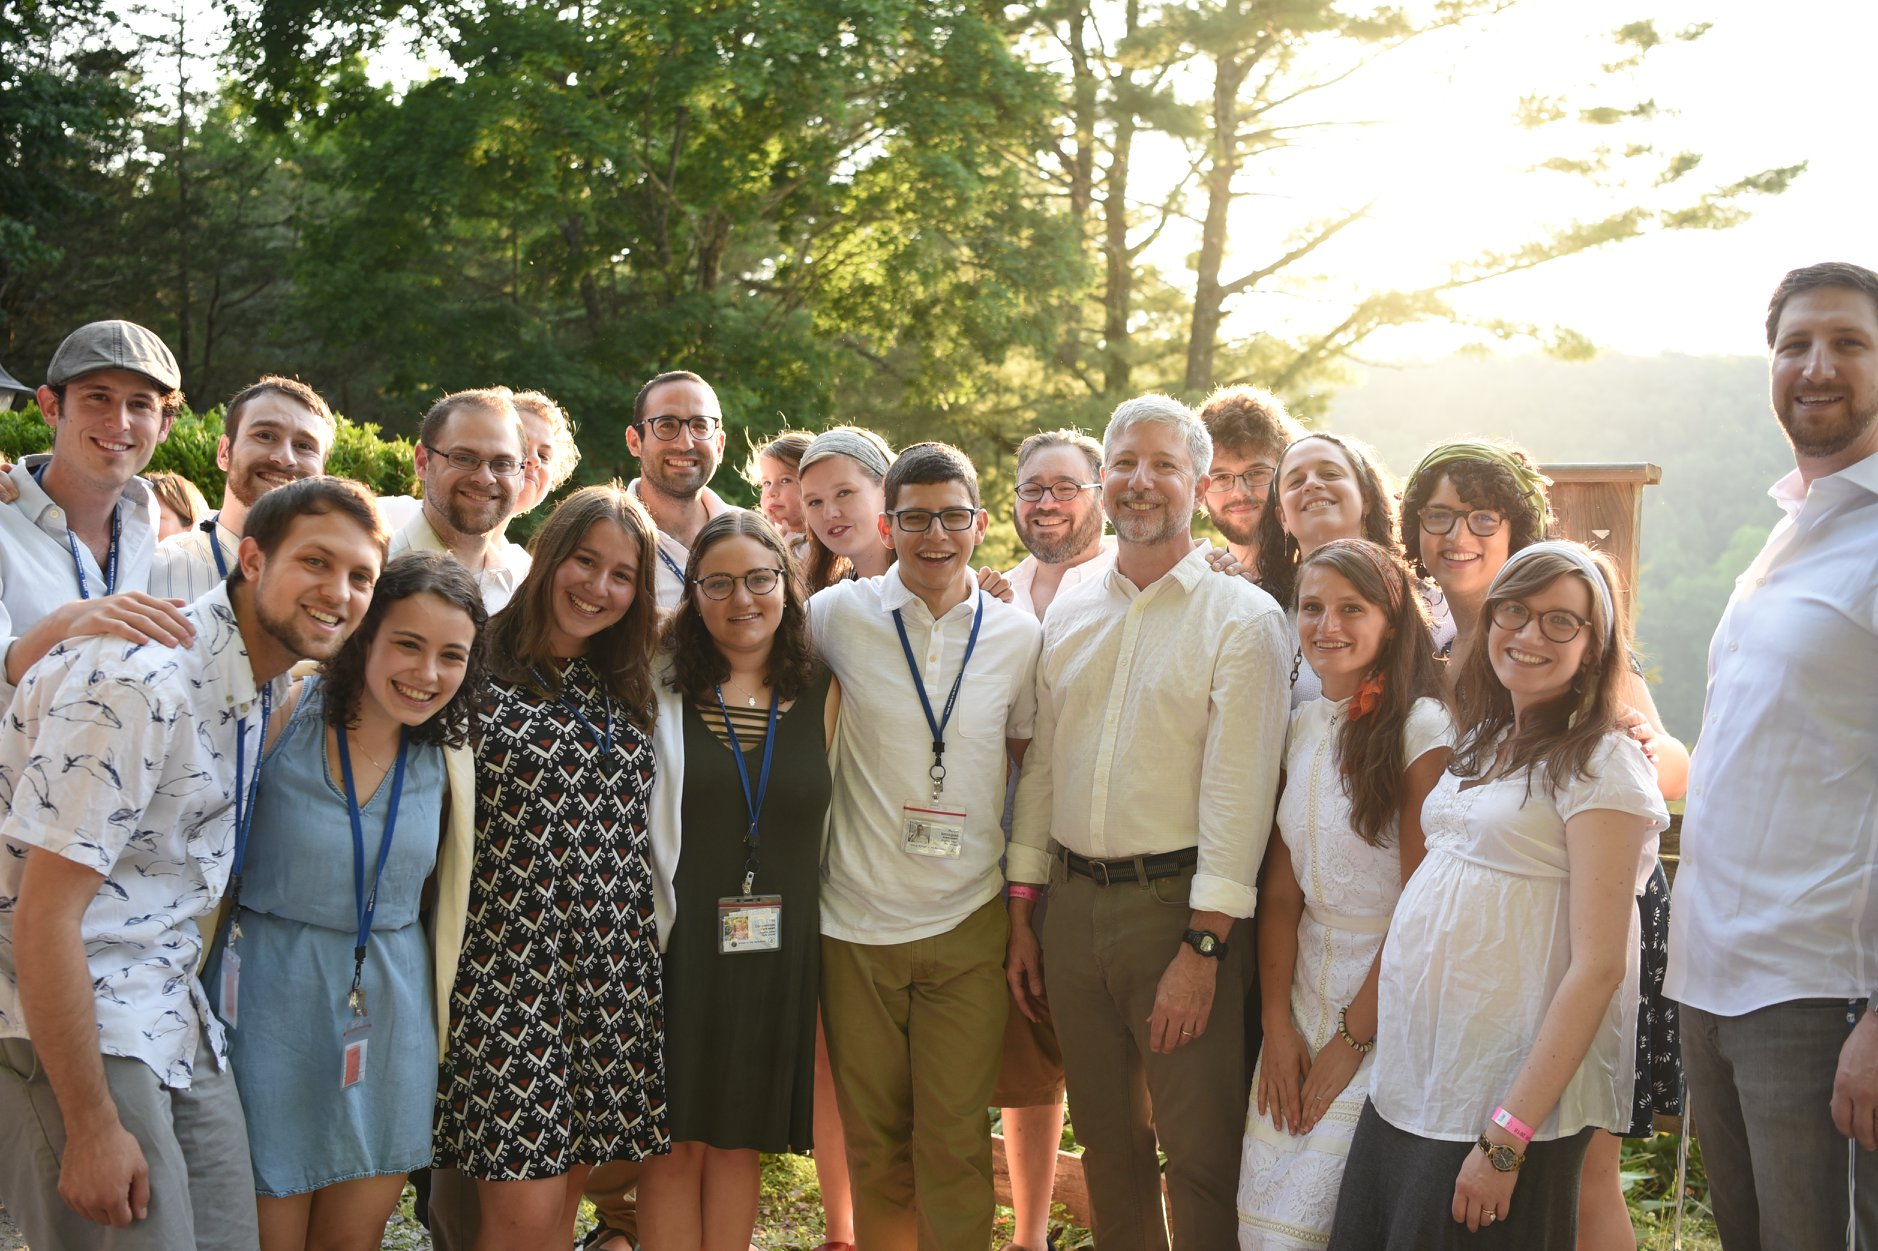 Rabbi Daniel Nevins (front row, 4th from right) at Camp Ramah in the Berkshires